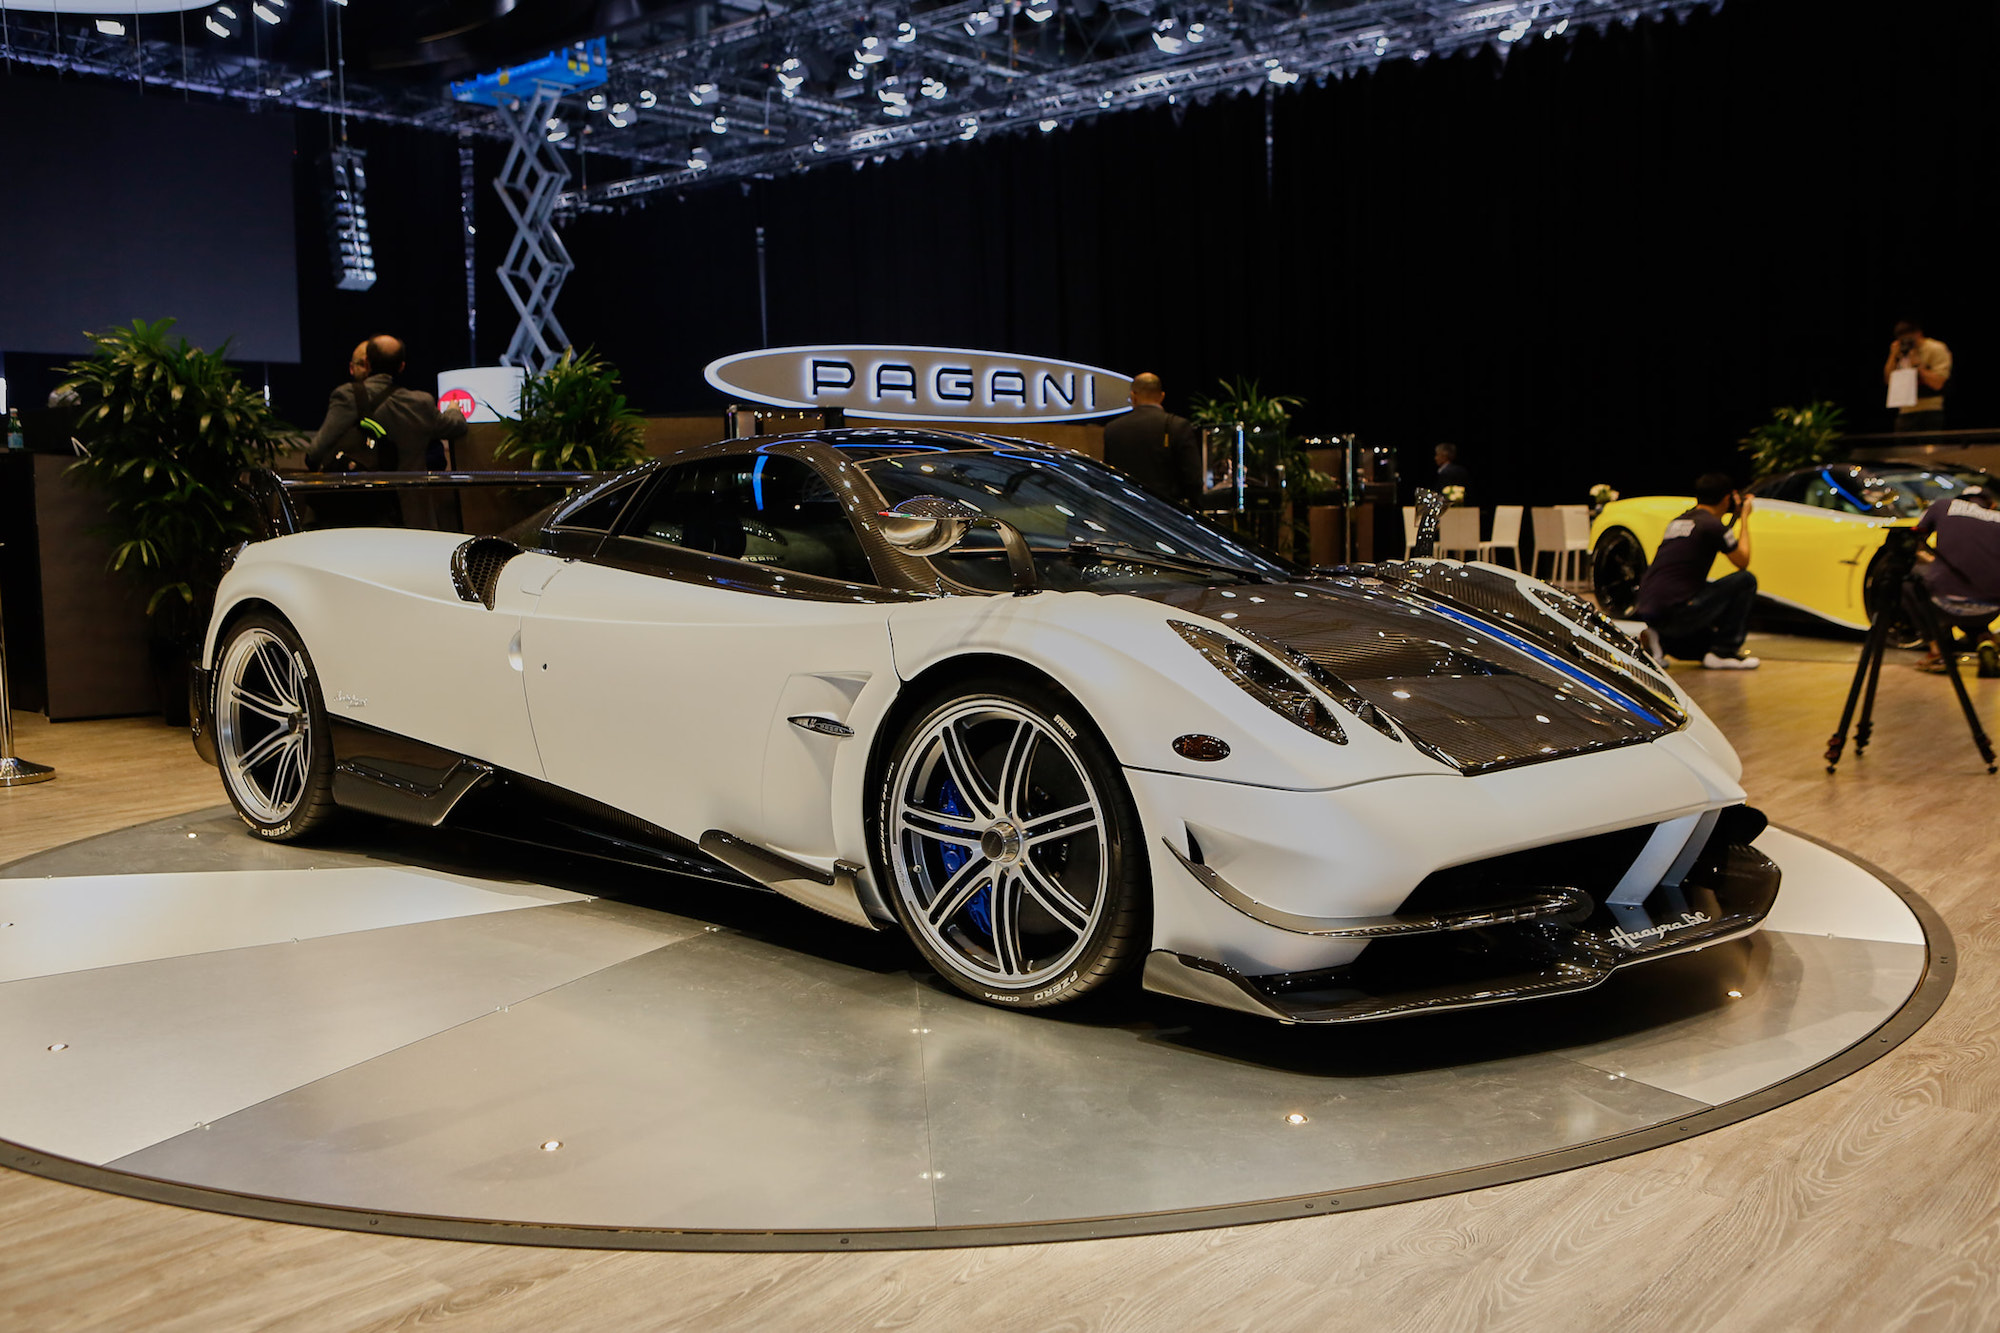 Pagani builds hot cars only